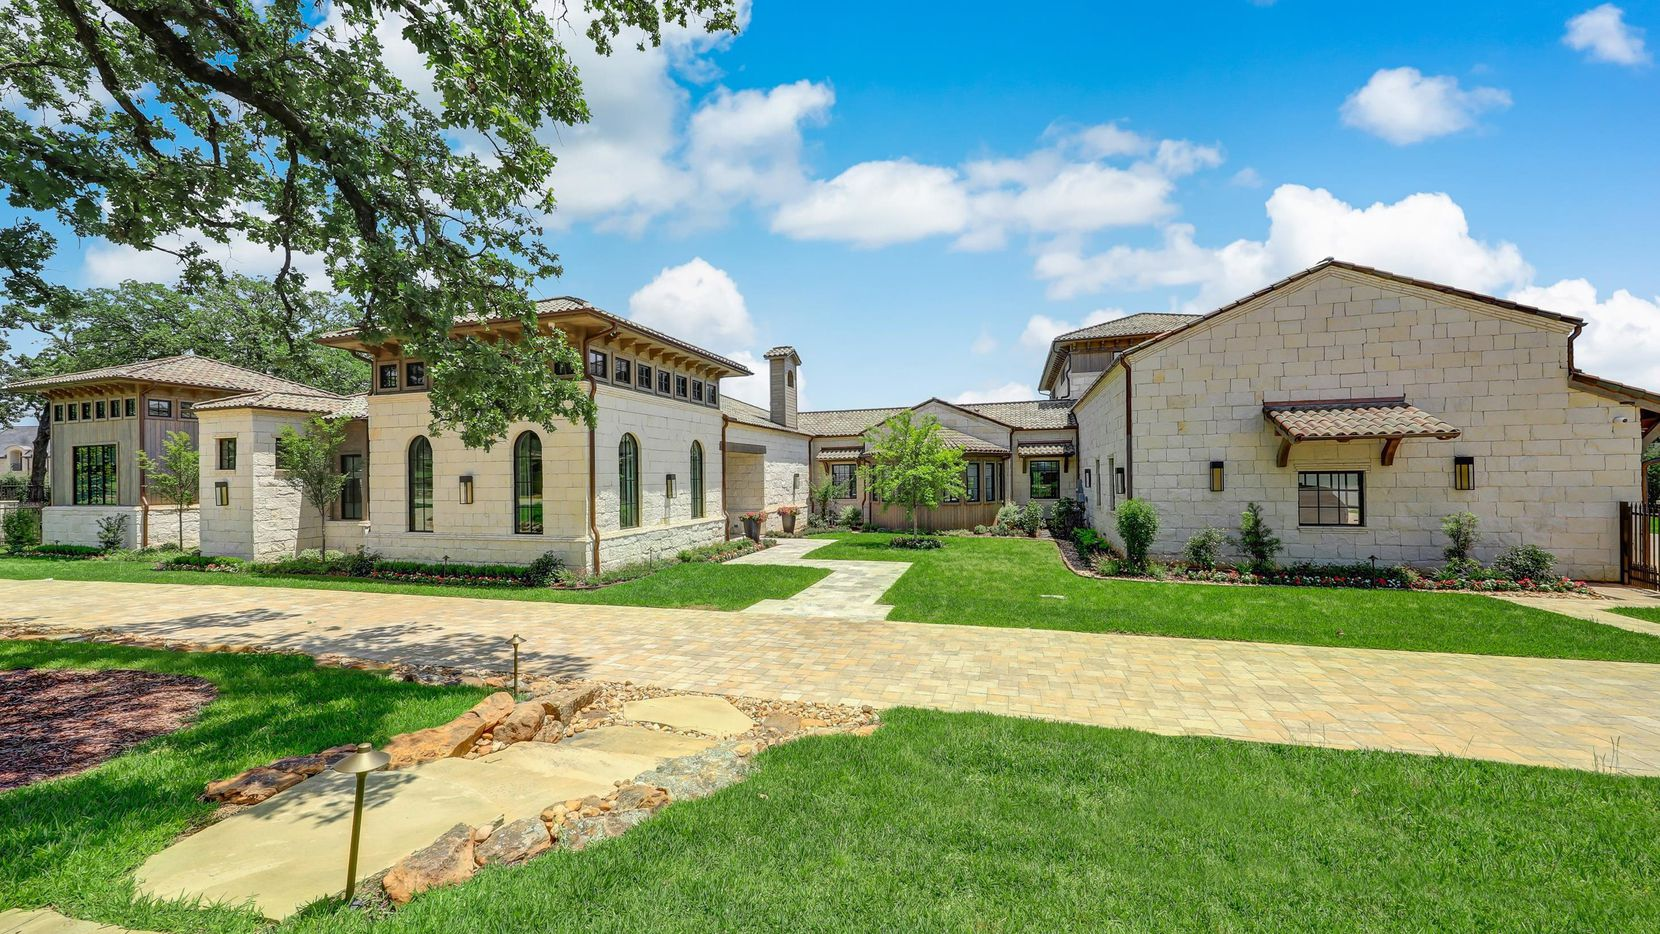 Take a look at the home at 1724 Placid Oaks Lane in Westlake.